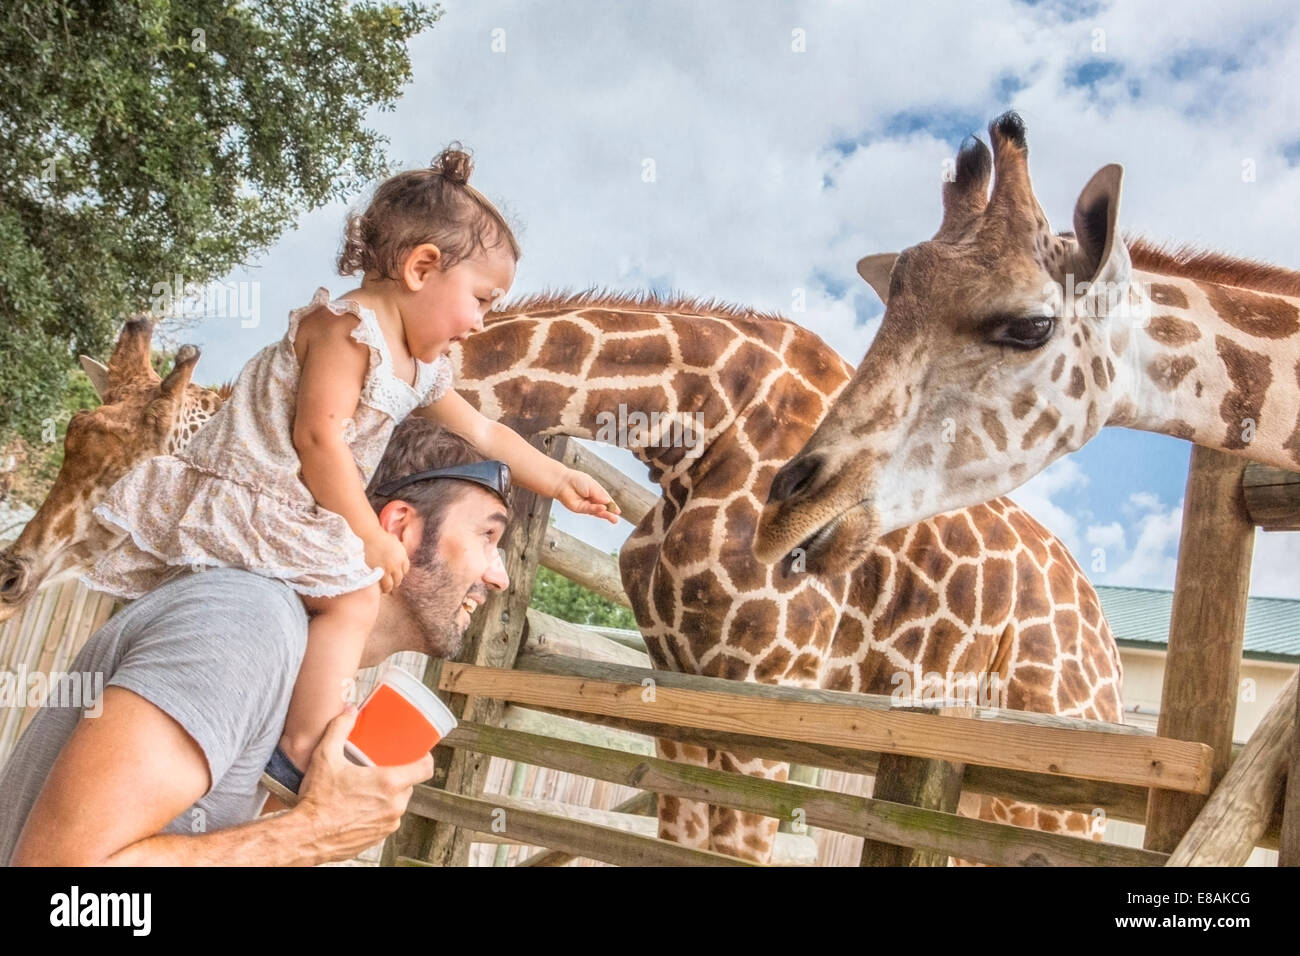 Baby girl on fathers shoulders feeding giraffes at zoo - Stock Image